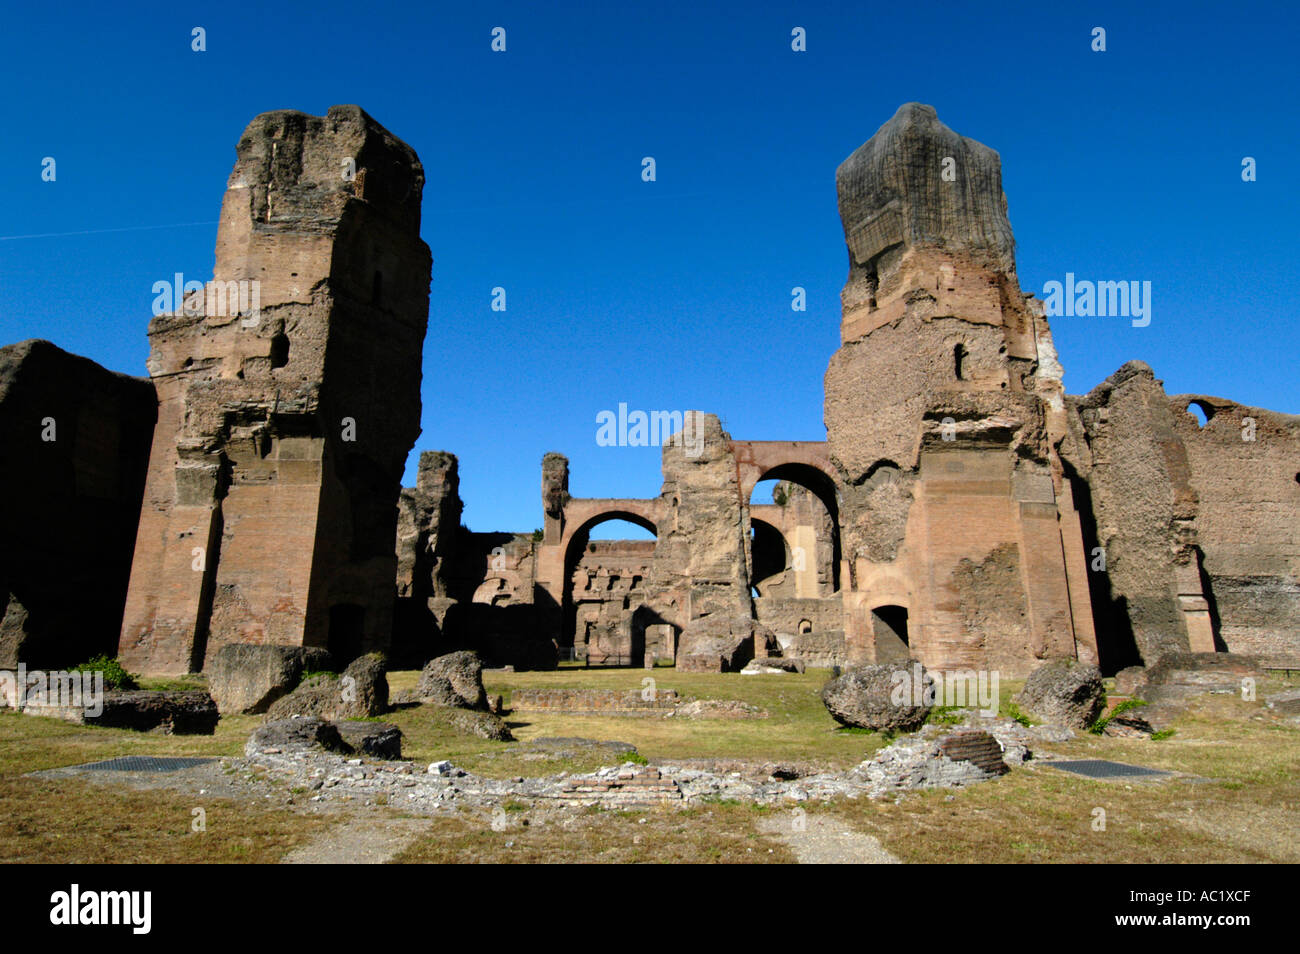 The Baths of Caracalla Rome Italy - Stock Image